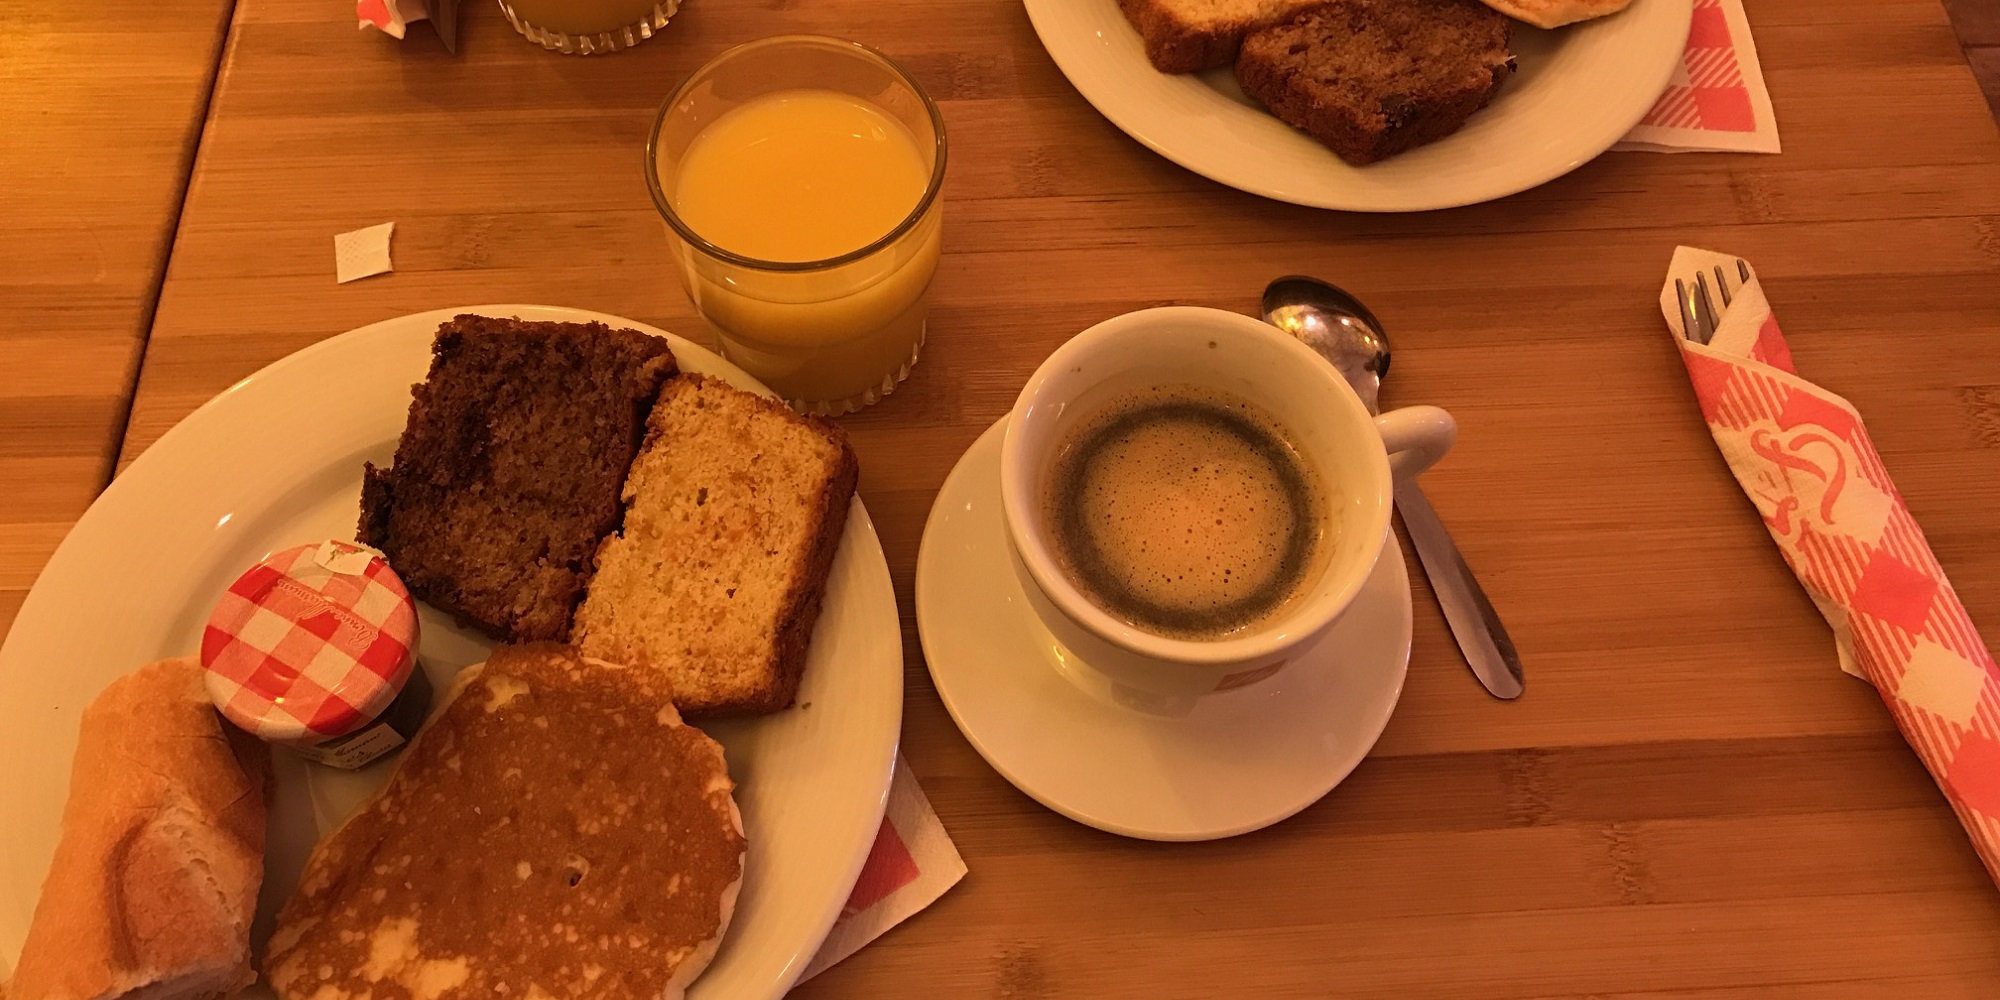 Brunch French Cantine (75013 Paris)